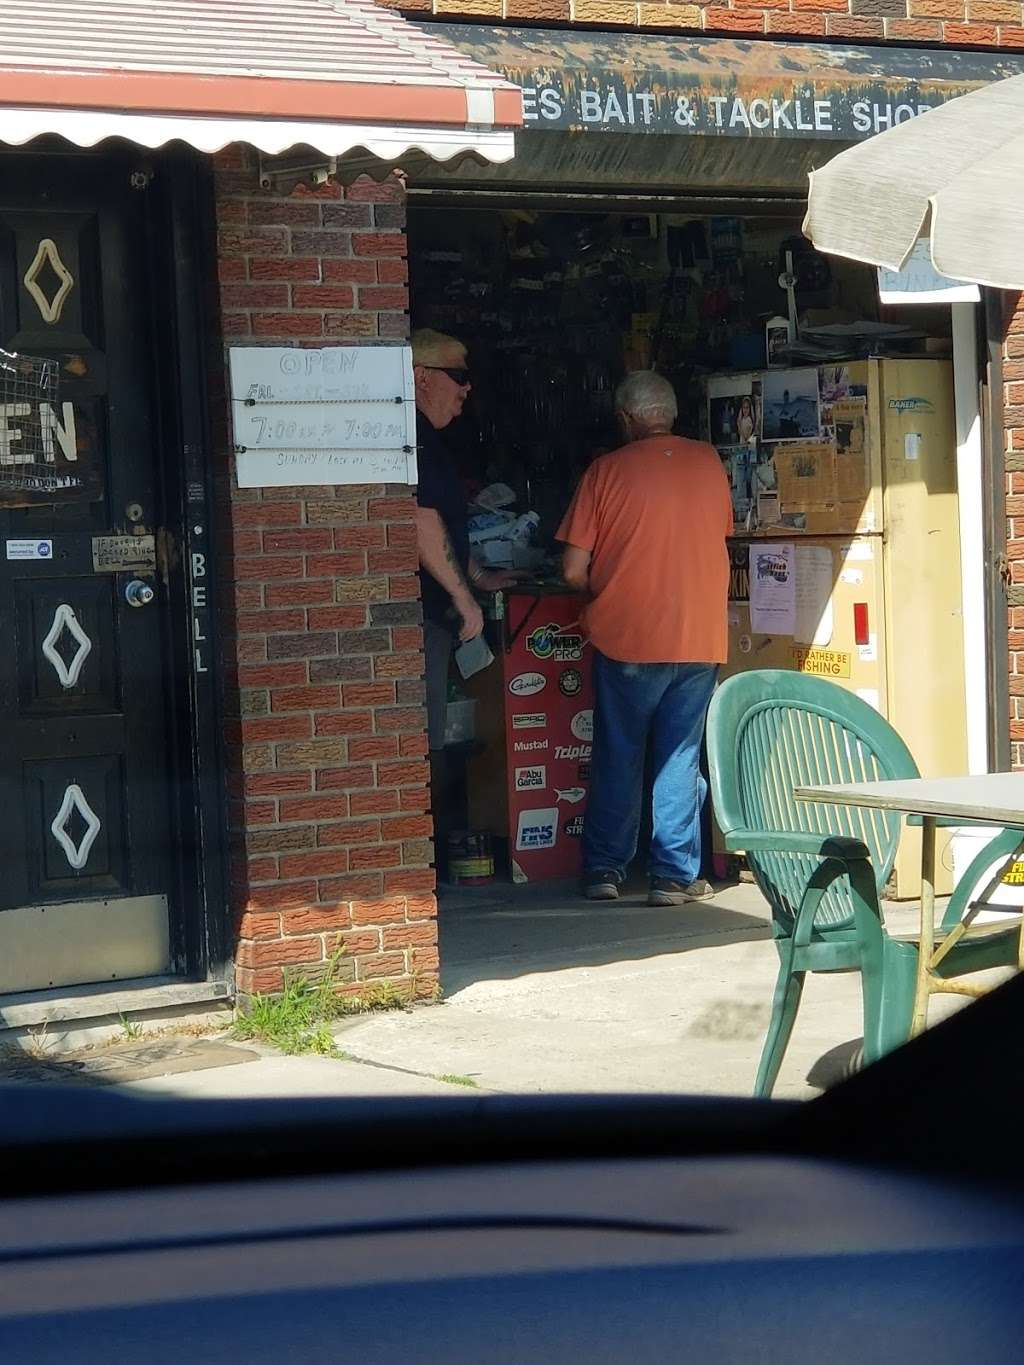 Moes Bait & Tackle Shop - store  | Photo 1 of 1 | Address: 10 South St, Jersey City, NJ 07307, USA | Phone: (201) 795-2529